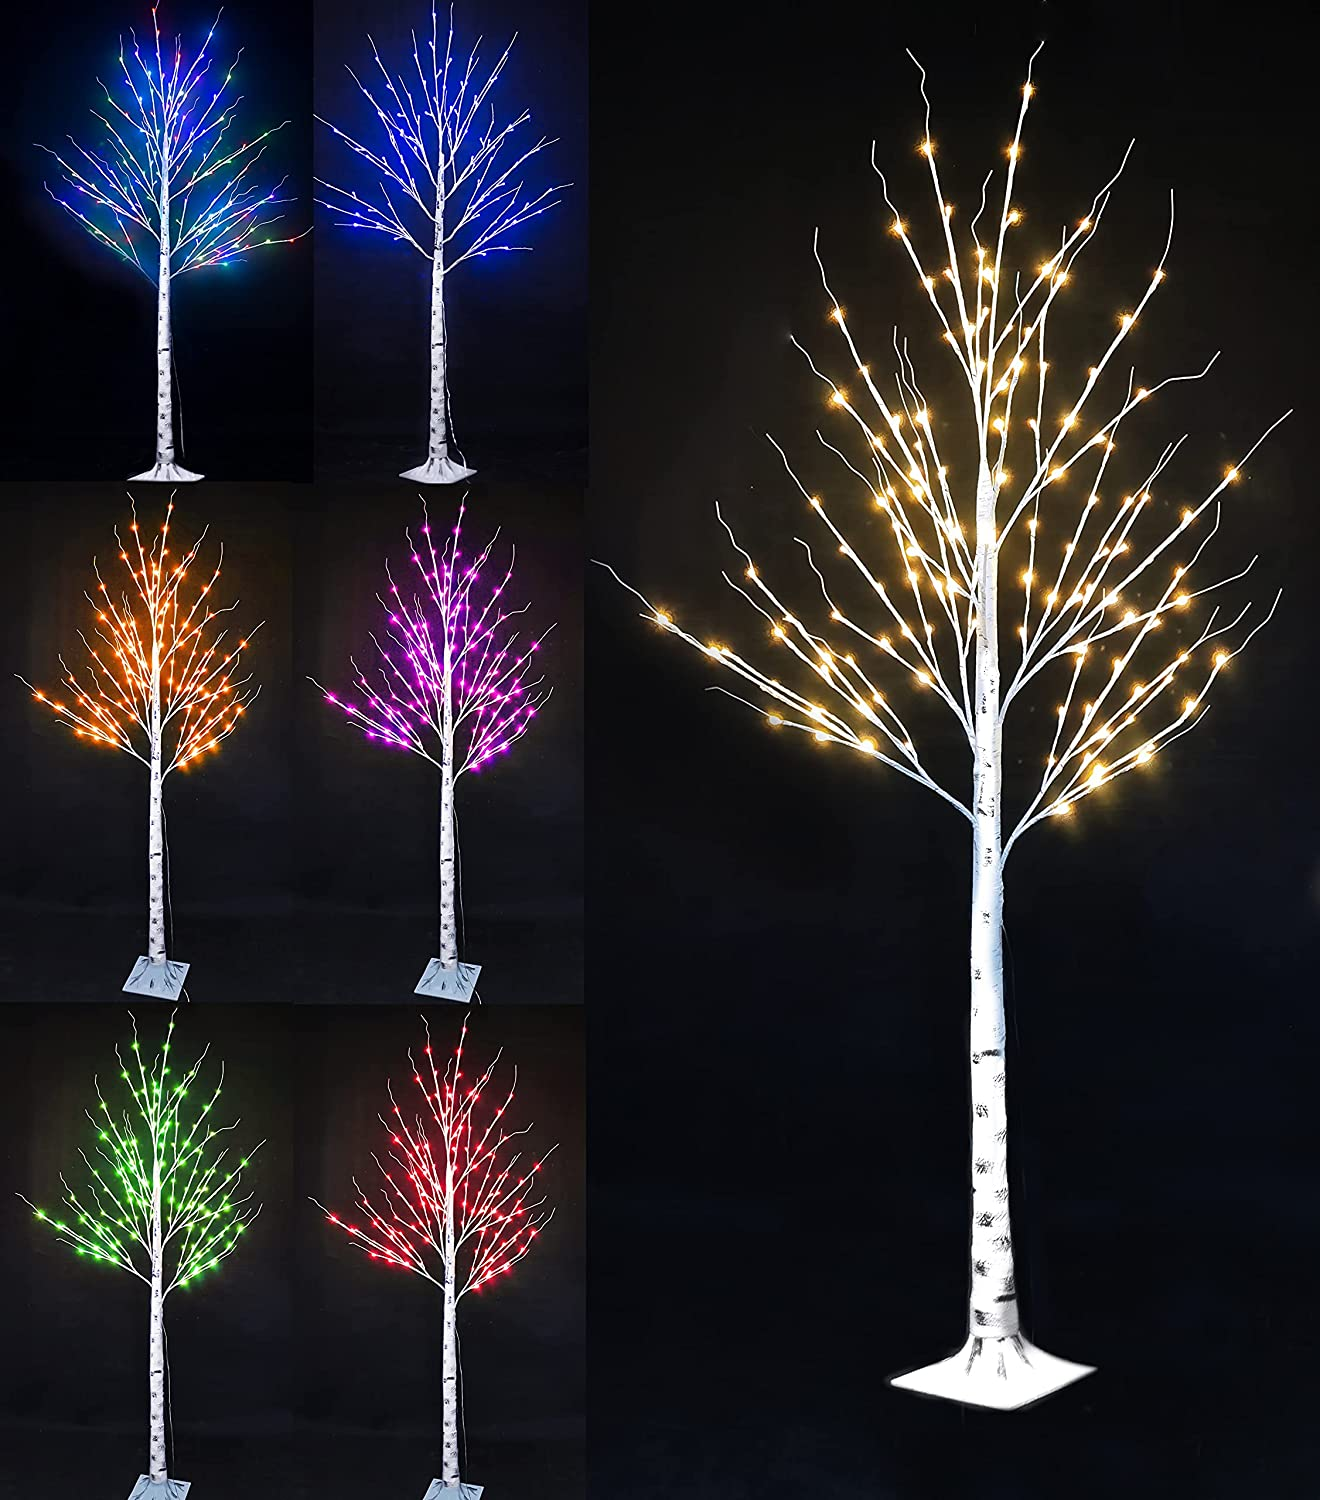 In a popularity 16 Color Factory outlet Changing Lit Birch Tree Lighted 5 FT Multicolor Artifi